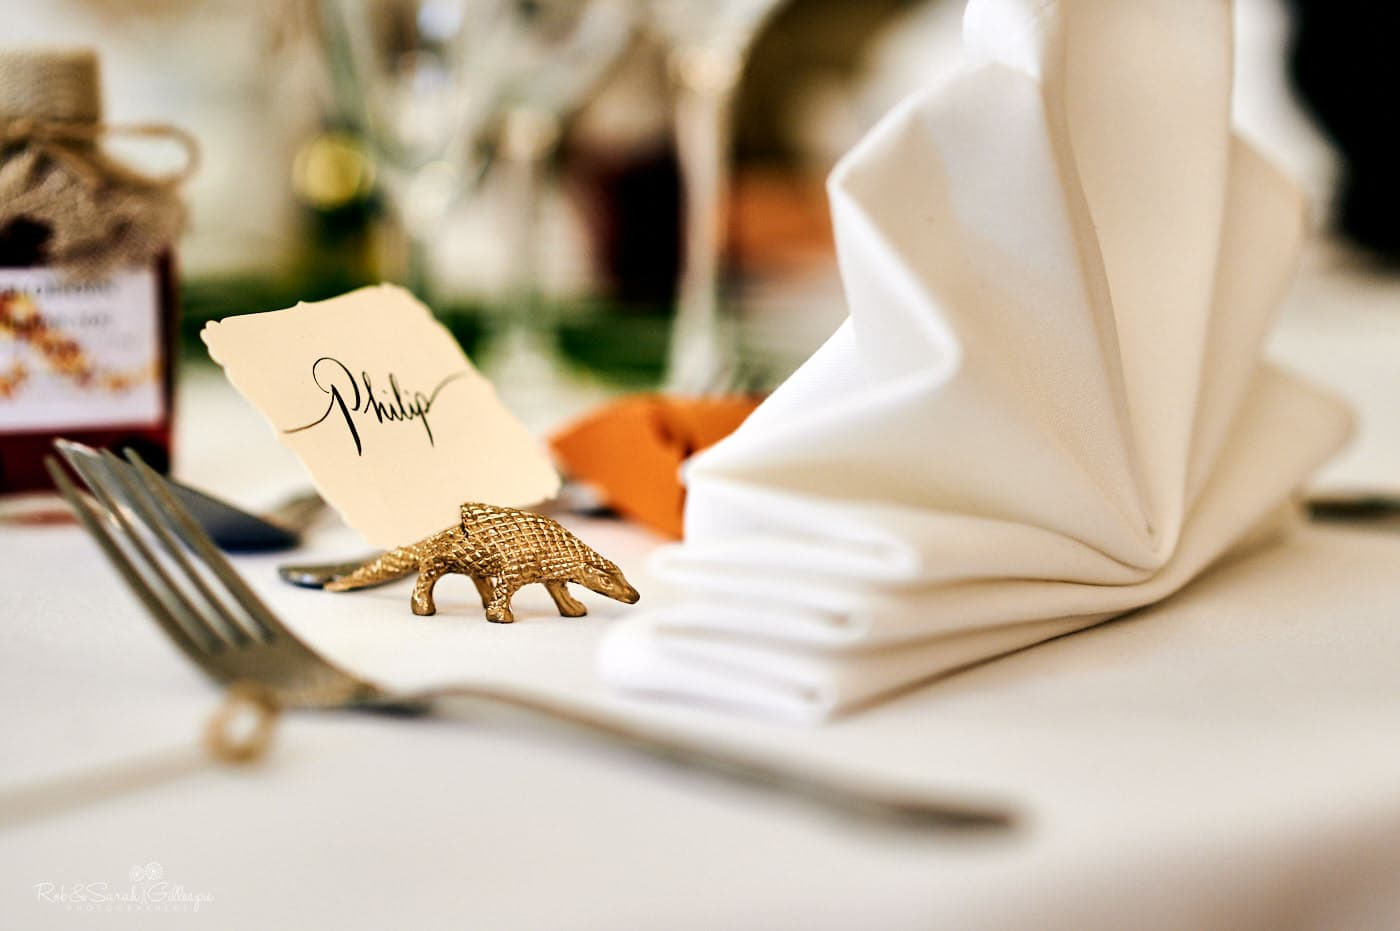 Wedding meal table details